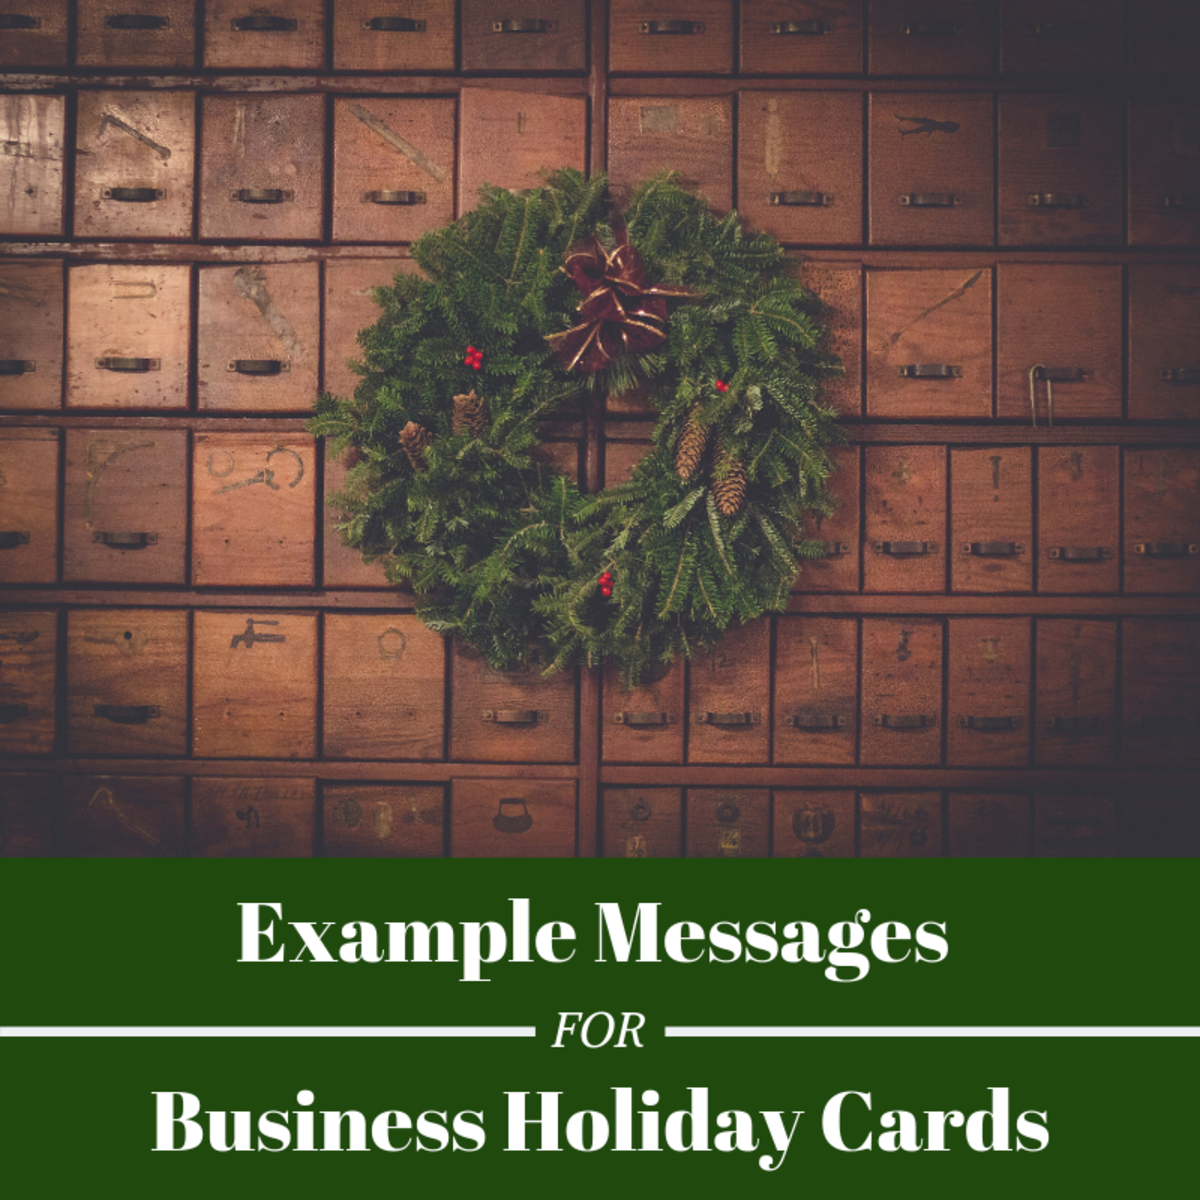 Sending holiday greetings to clients and employees is a great way to remind the community that your business cares.